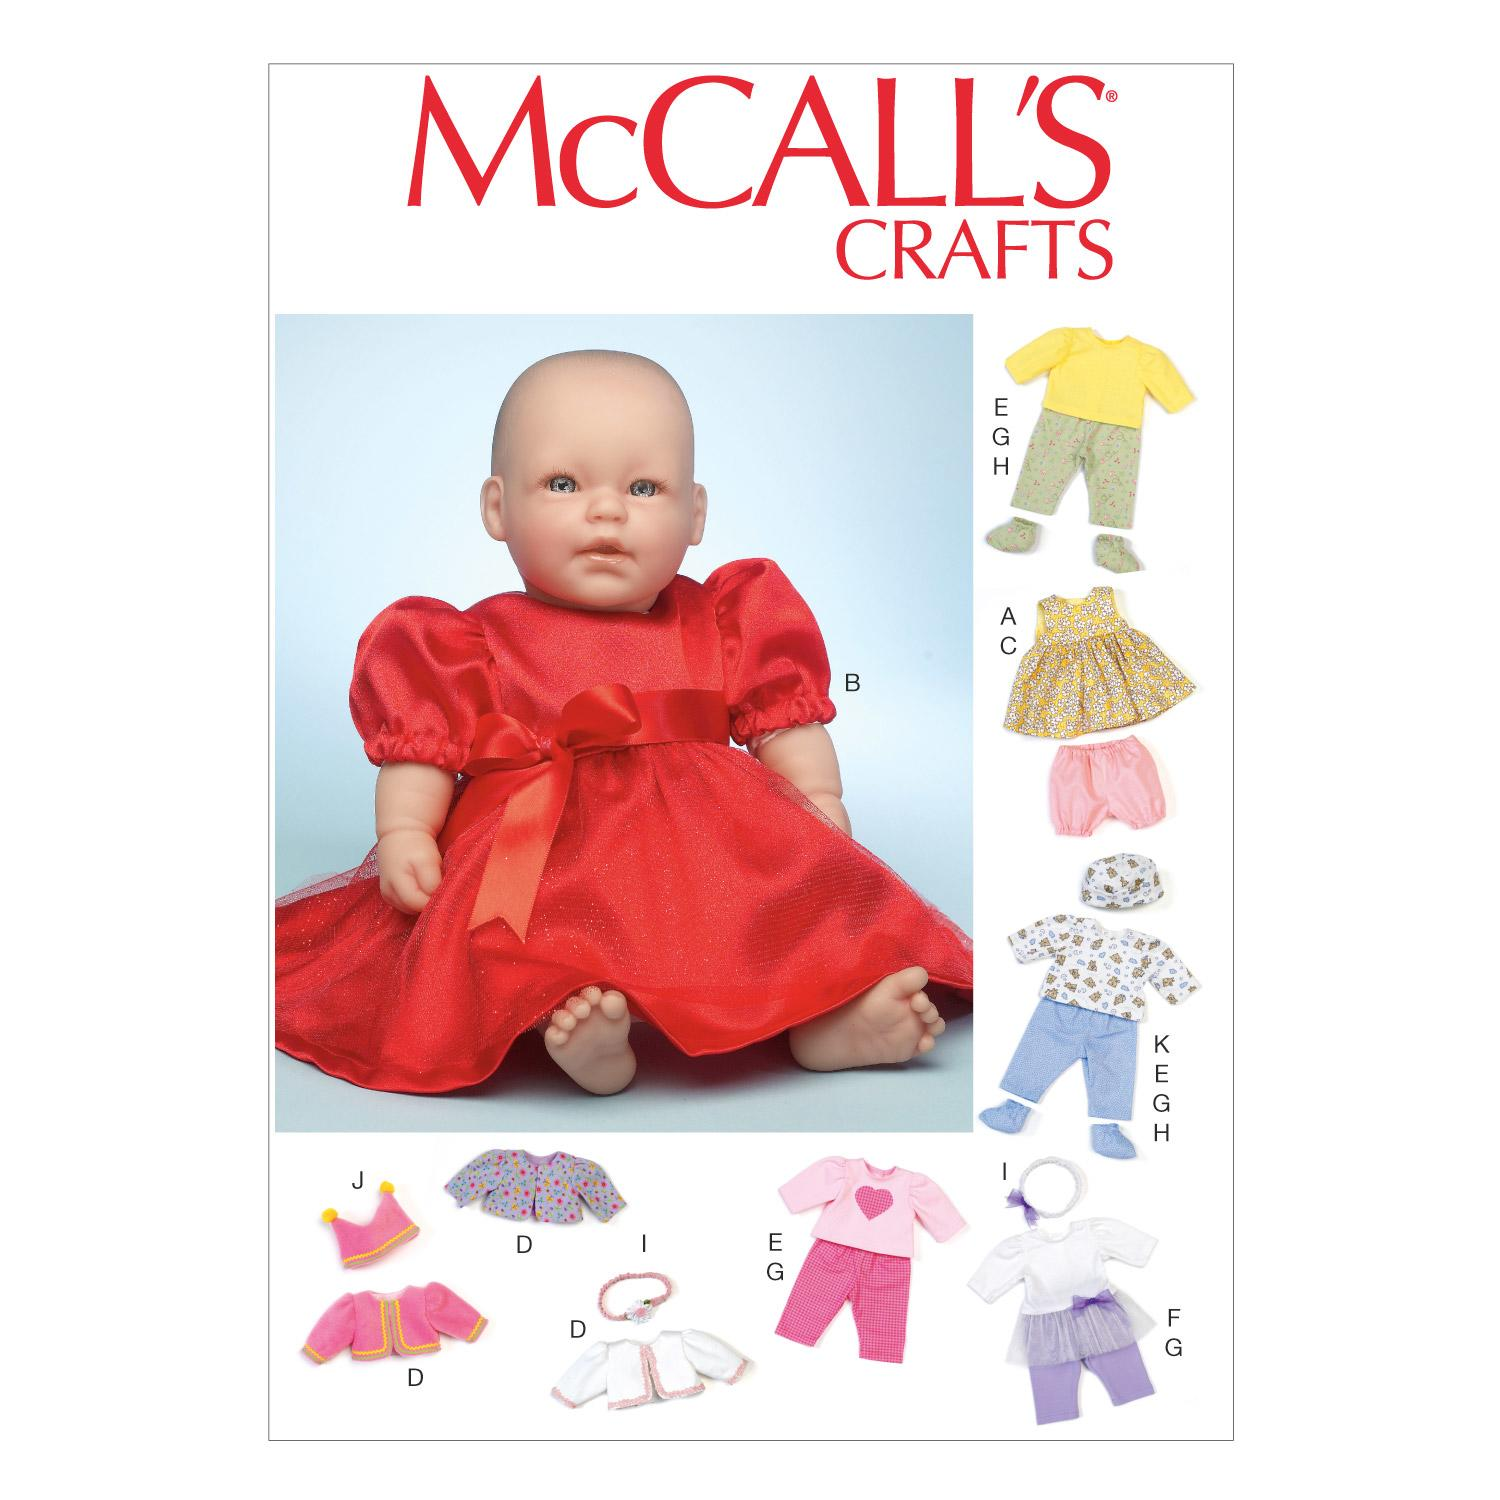 McCalls M7066 Crafts/Dolls/Pets